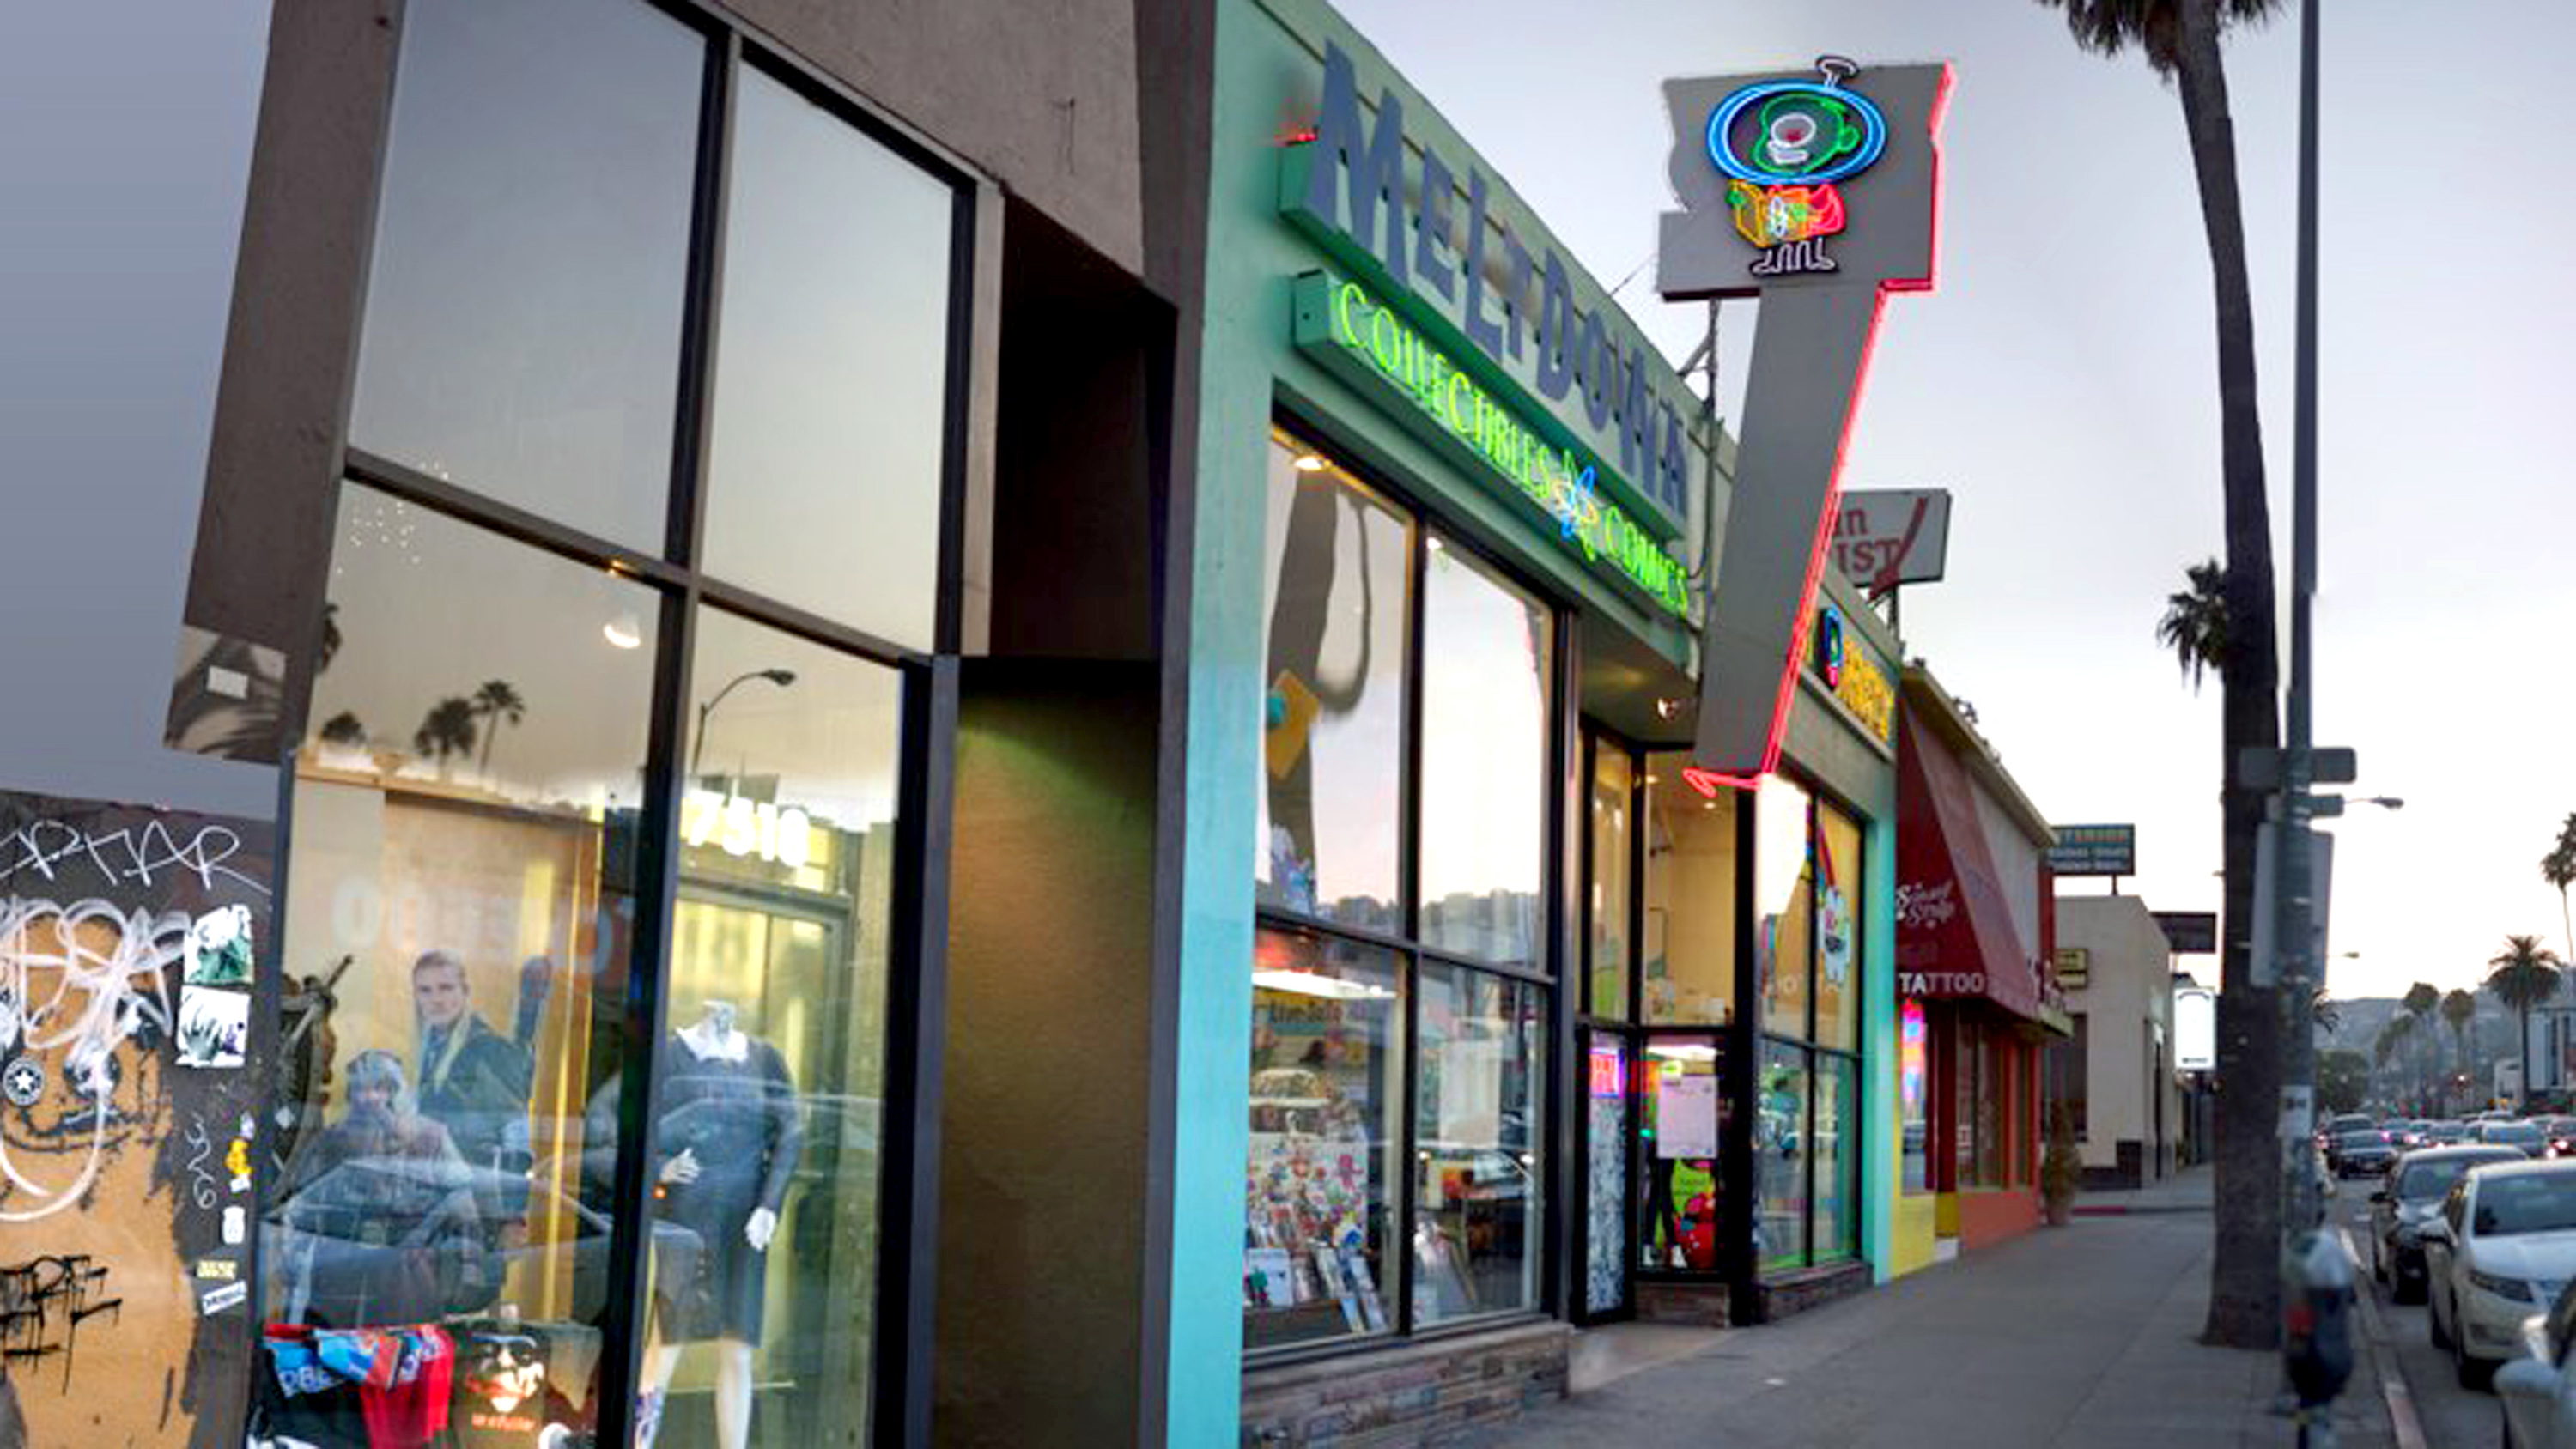 Meltdown Comics and NerdMelt, one of L.A.'s best comedy venues, are closing